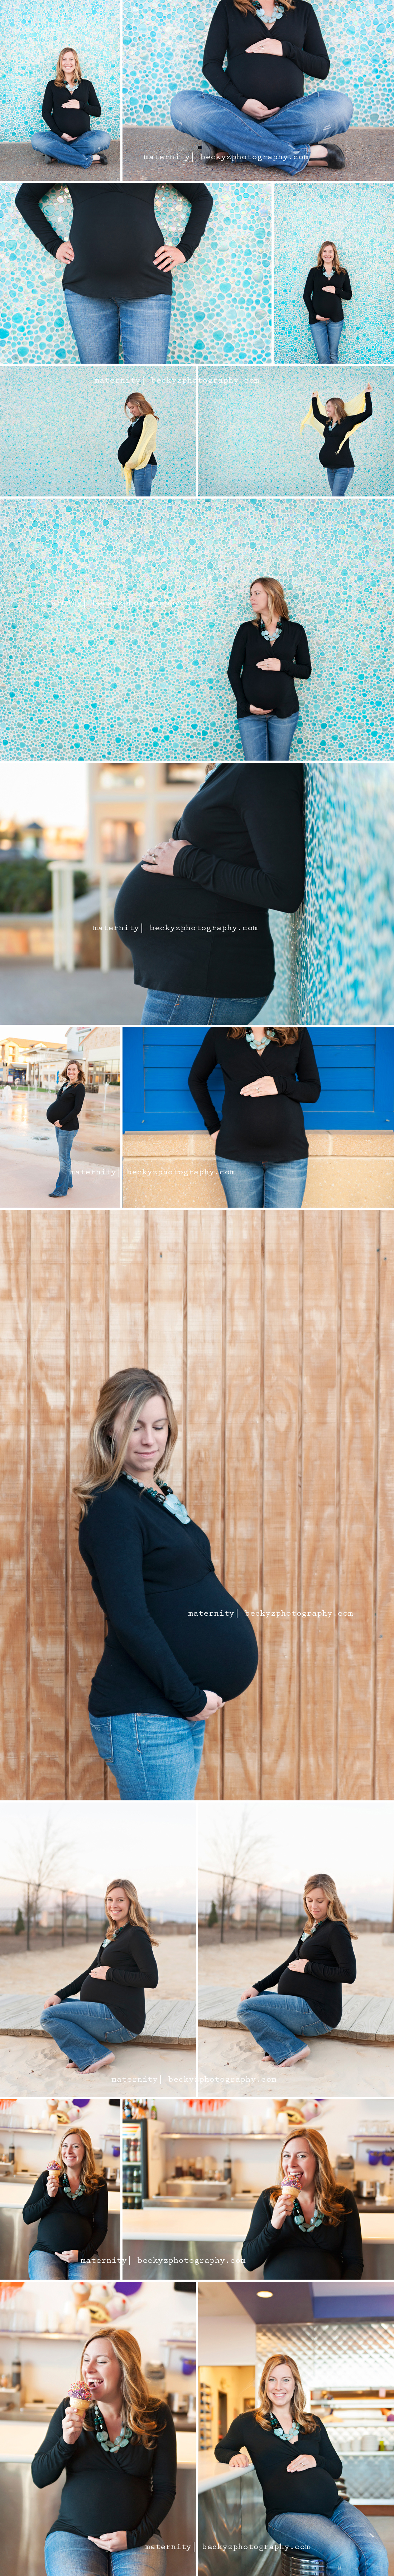 8482961003 3200dfbe17 o Pickles and Ice Cream   McKinney Maternity Photographer